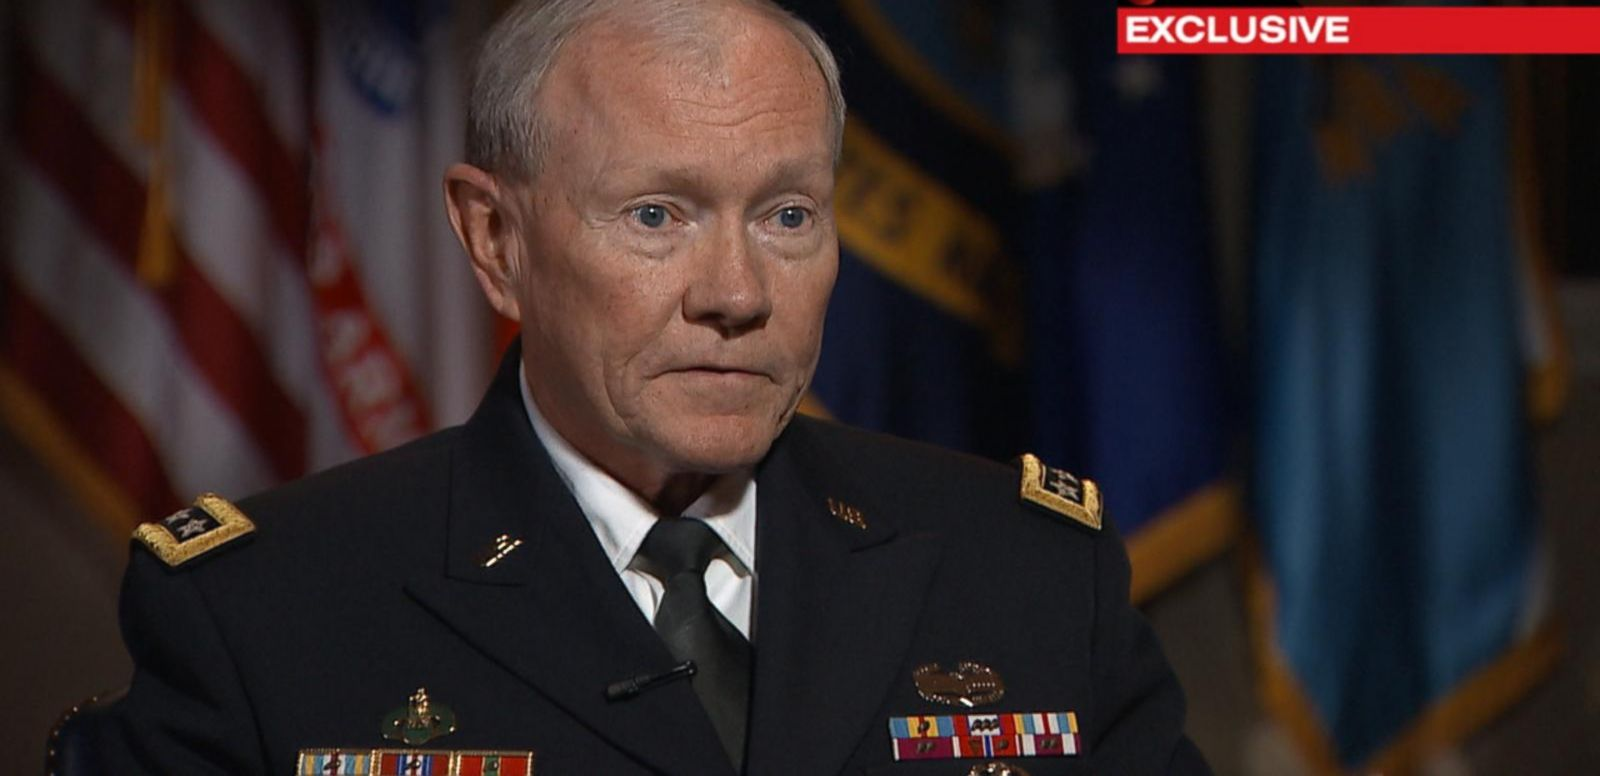 VIDEO: Joint Chiefs Chairman: Refugee Crisis 'Most Prominent Issue' Among Military Leaders